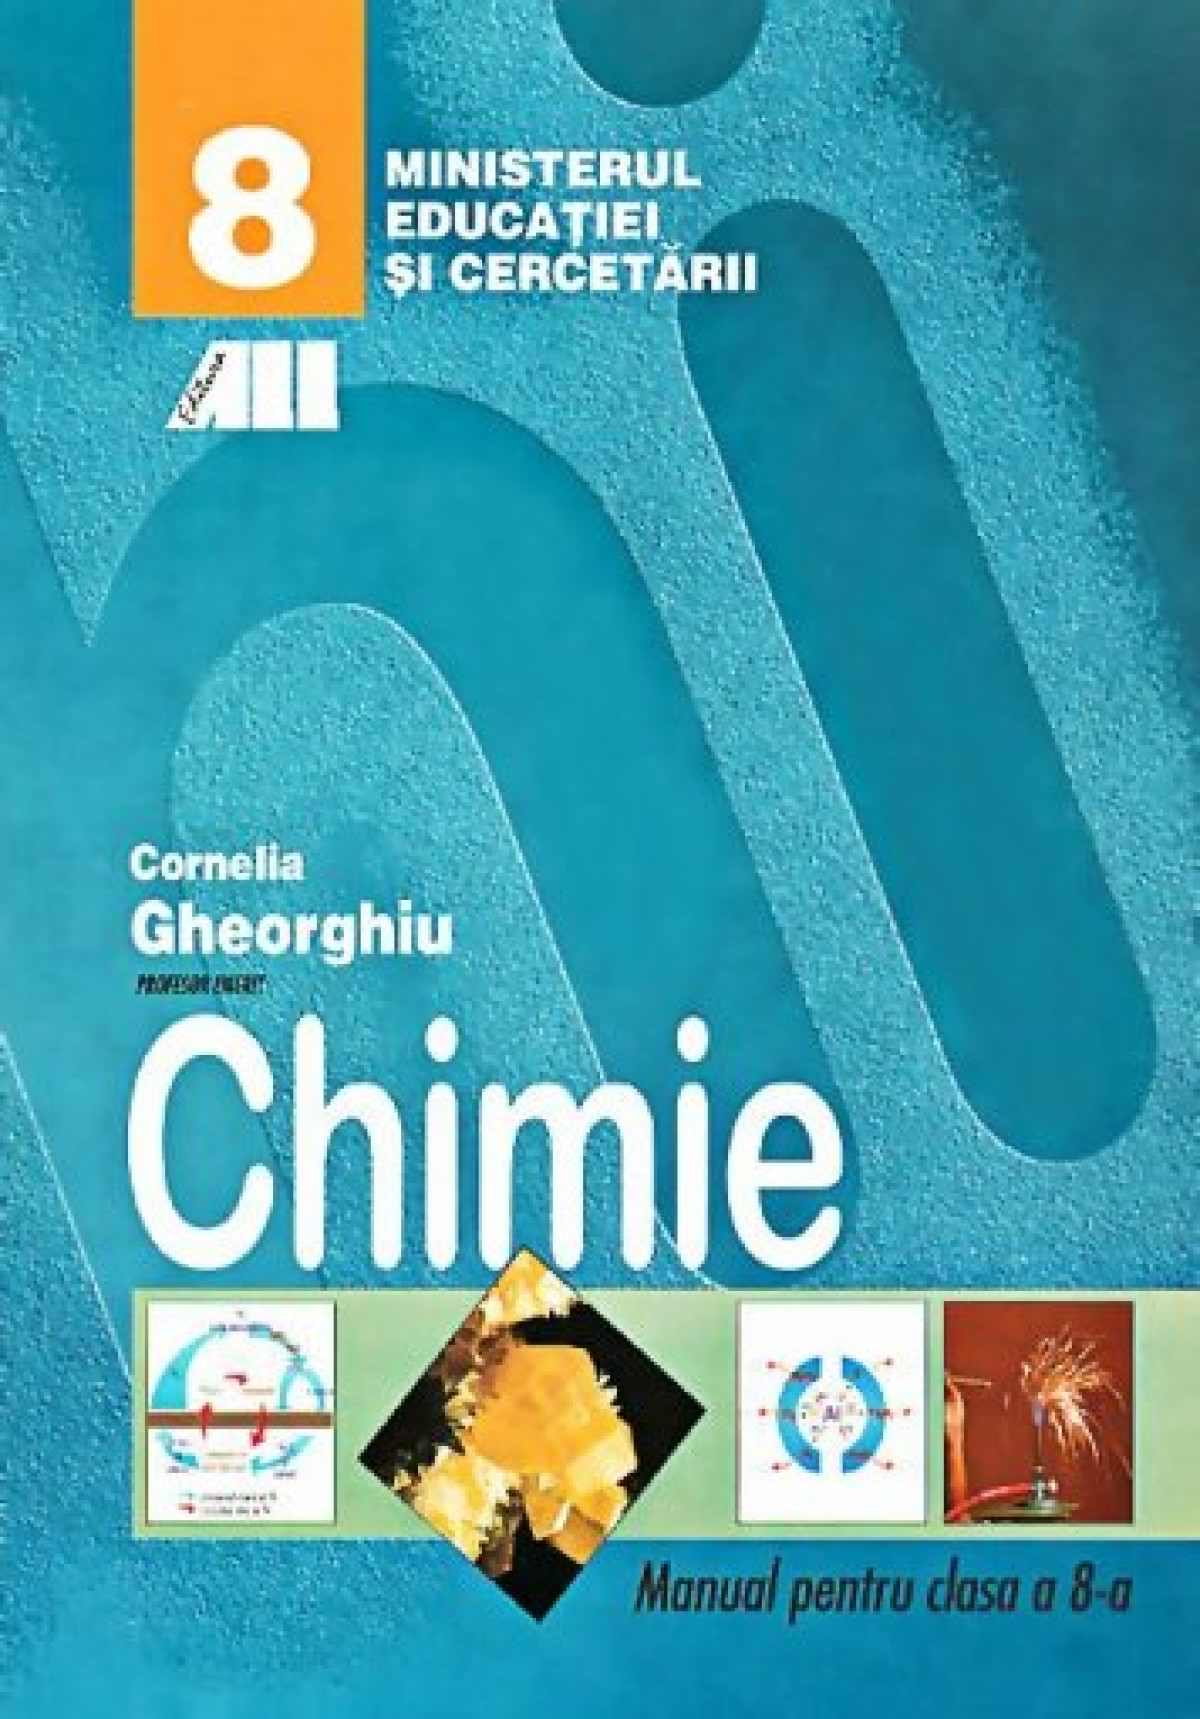 Chimie 14